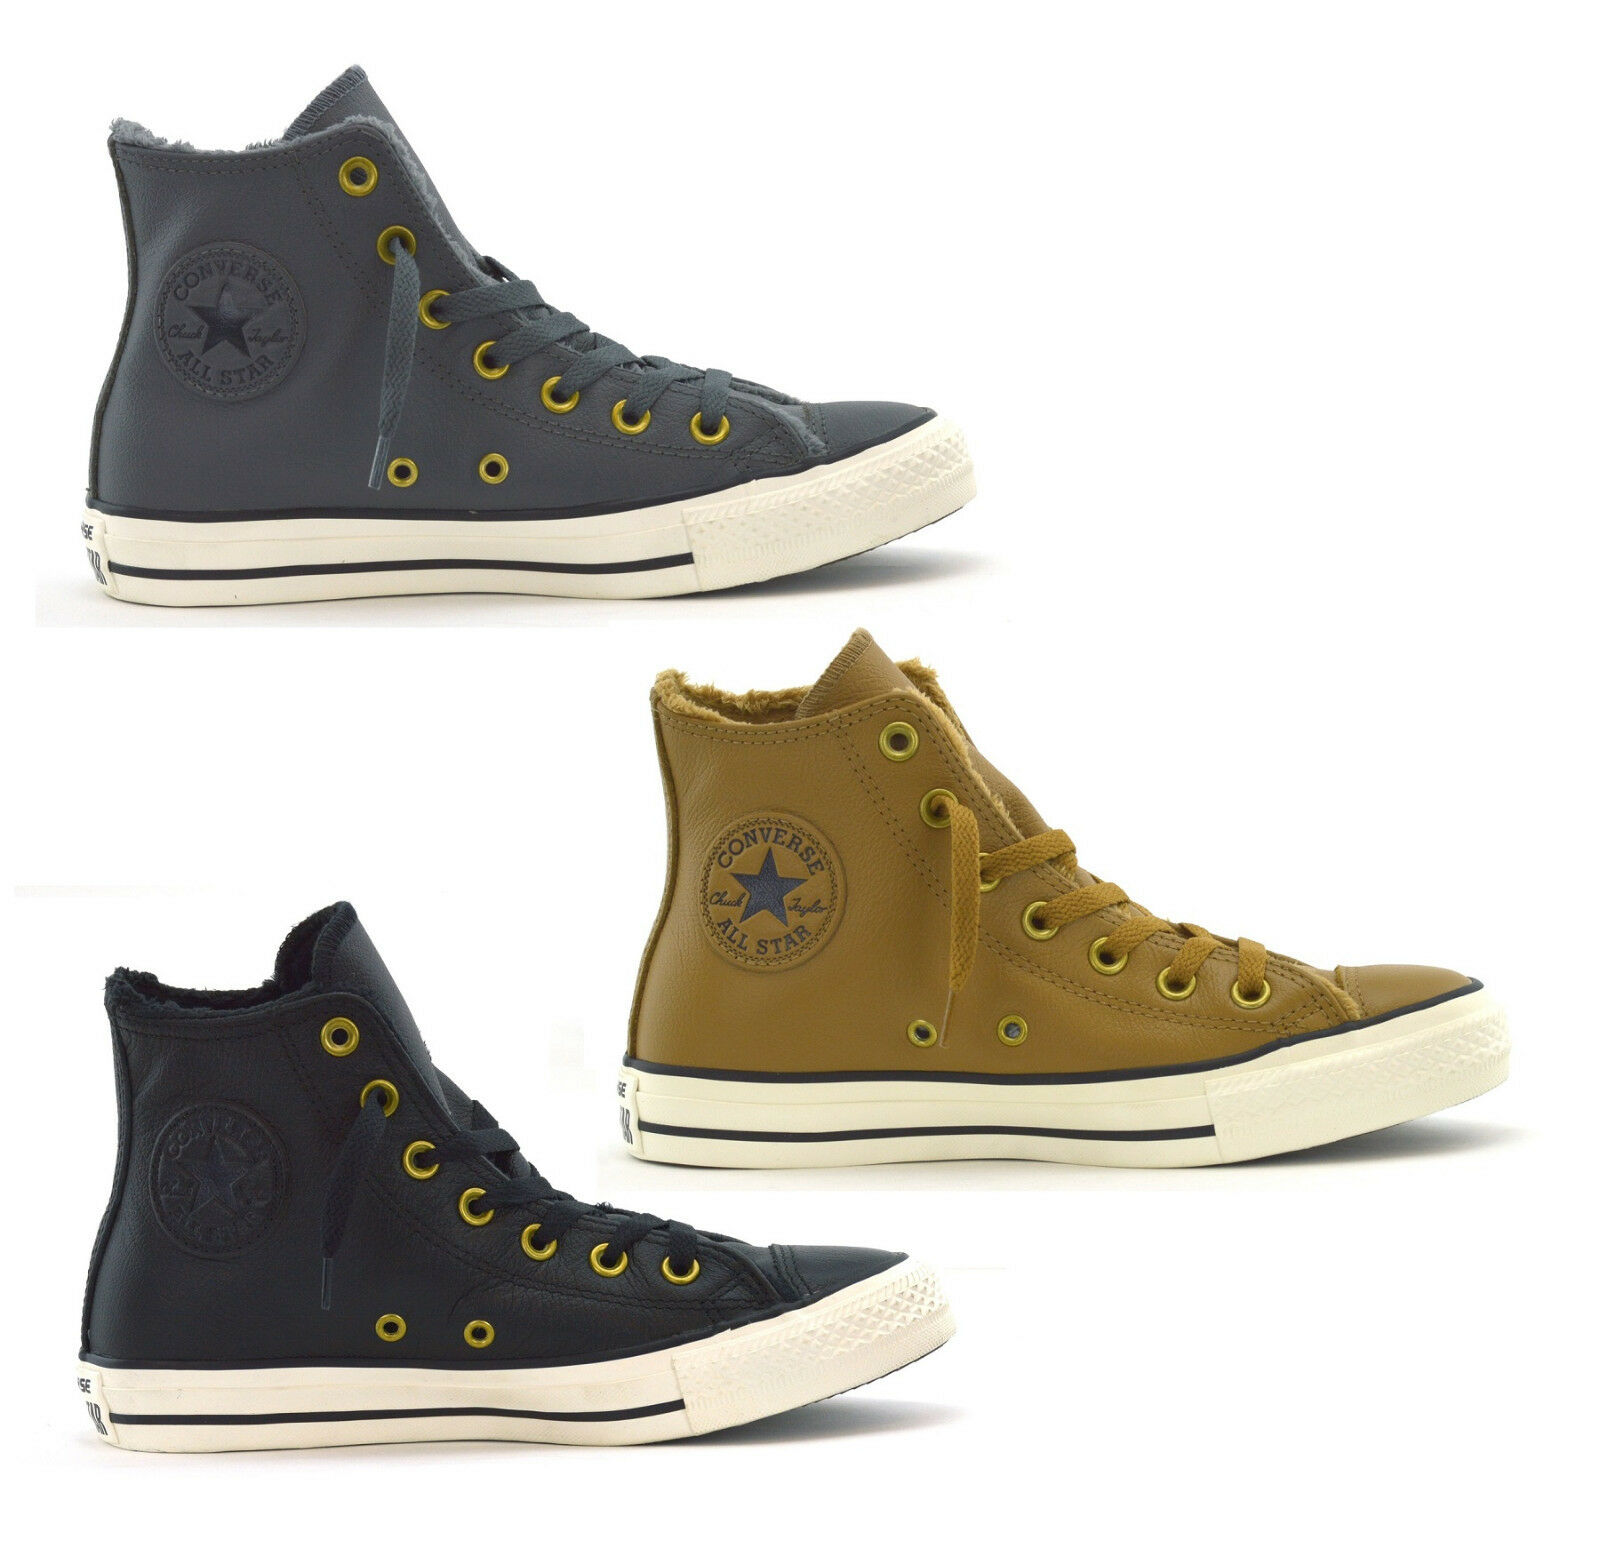 CONVERSE CTAS HI LEATHER & FAUX FUR  LINED-WOMENS SNEAKERS-CHOICE OF COLOURS-NEW